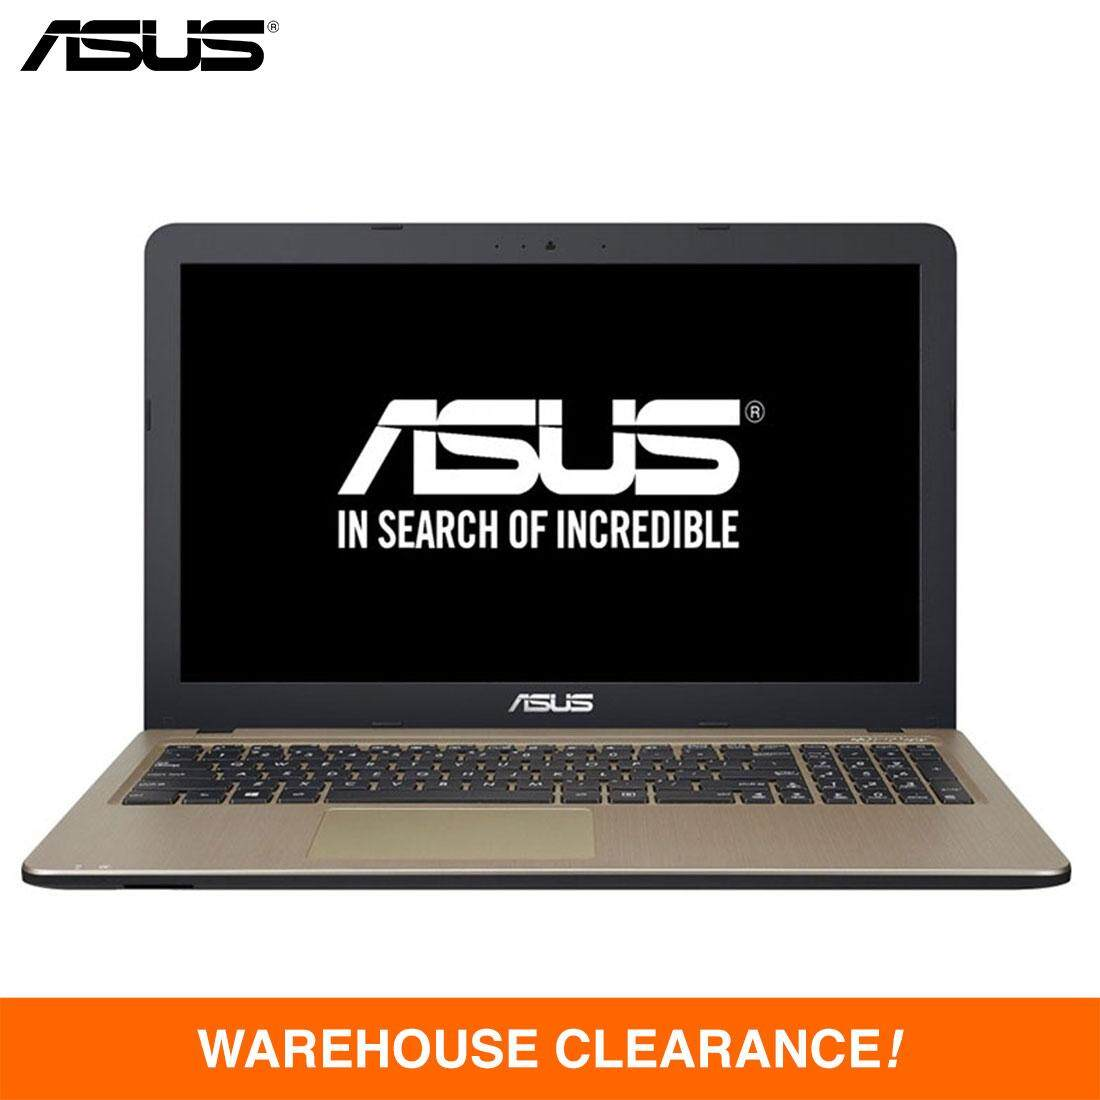 ASUS® VivoBook Max X441N-AGA139T Laptop - Intel Coleren N3350, 1.10GHz, 4GB DDR3, 500GB, 14-inch LED, Intel Share, DVDRW, Windows 10 Home (Black) Malaysia